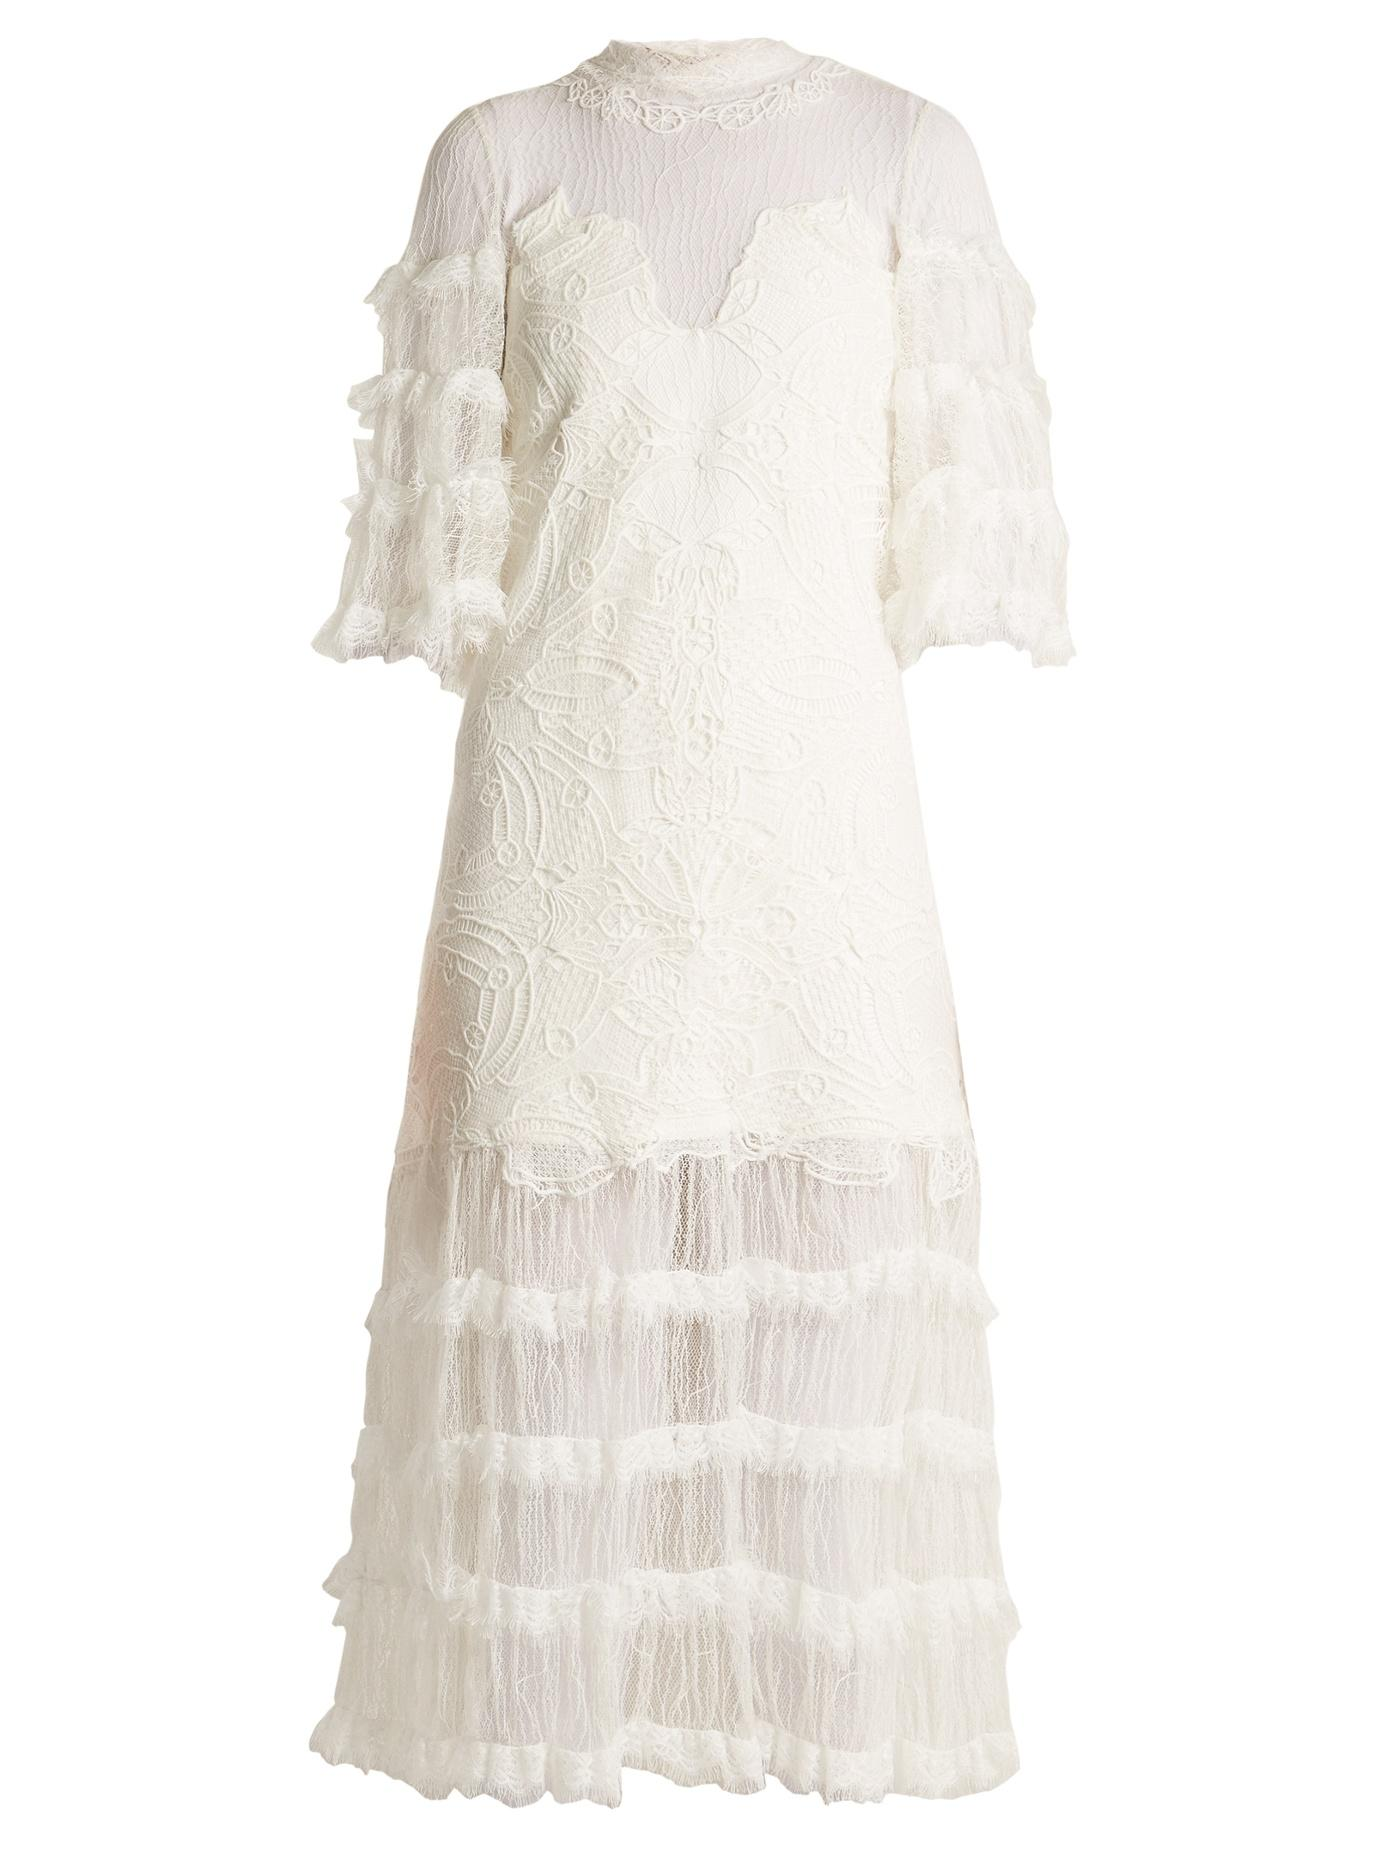 Jonathan Simkhai Contrast-Panel Tiered Lace Dress In White